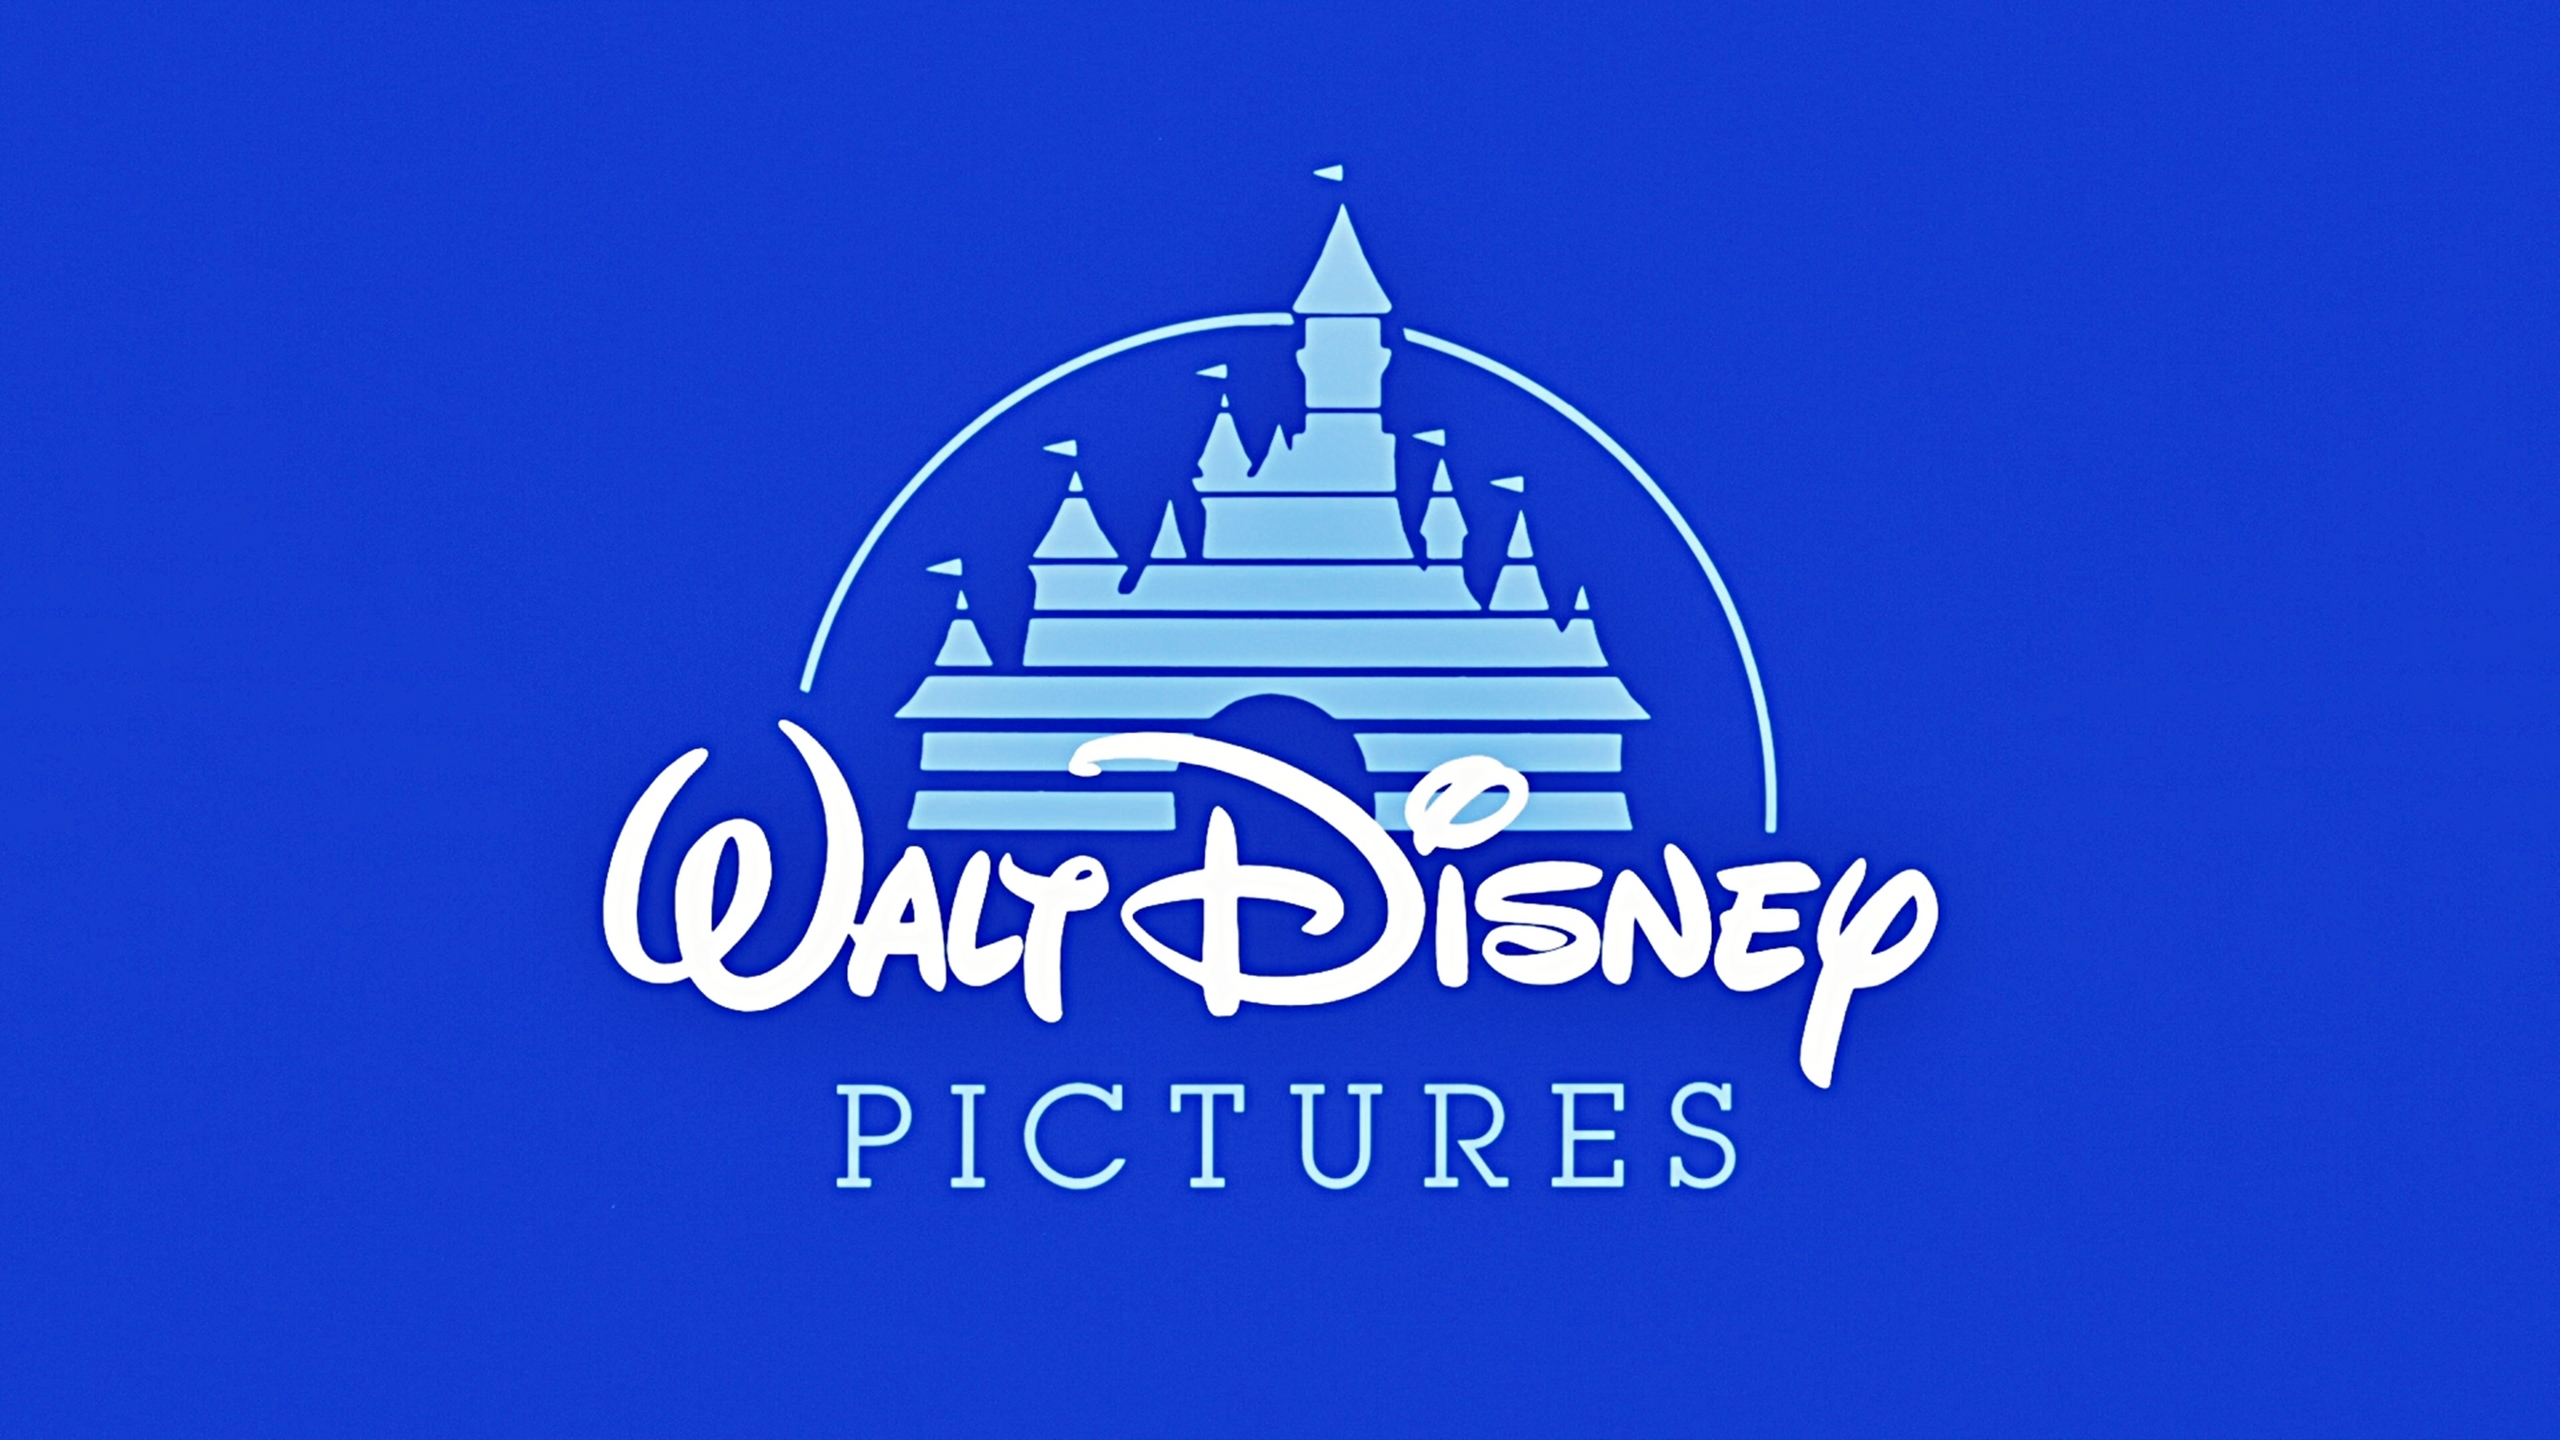 Http Www Fanpop Com Clubs Walt Disney Characters Images 31872968 Title Walt Disney Screencaps Walt Disney Logo Photo